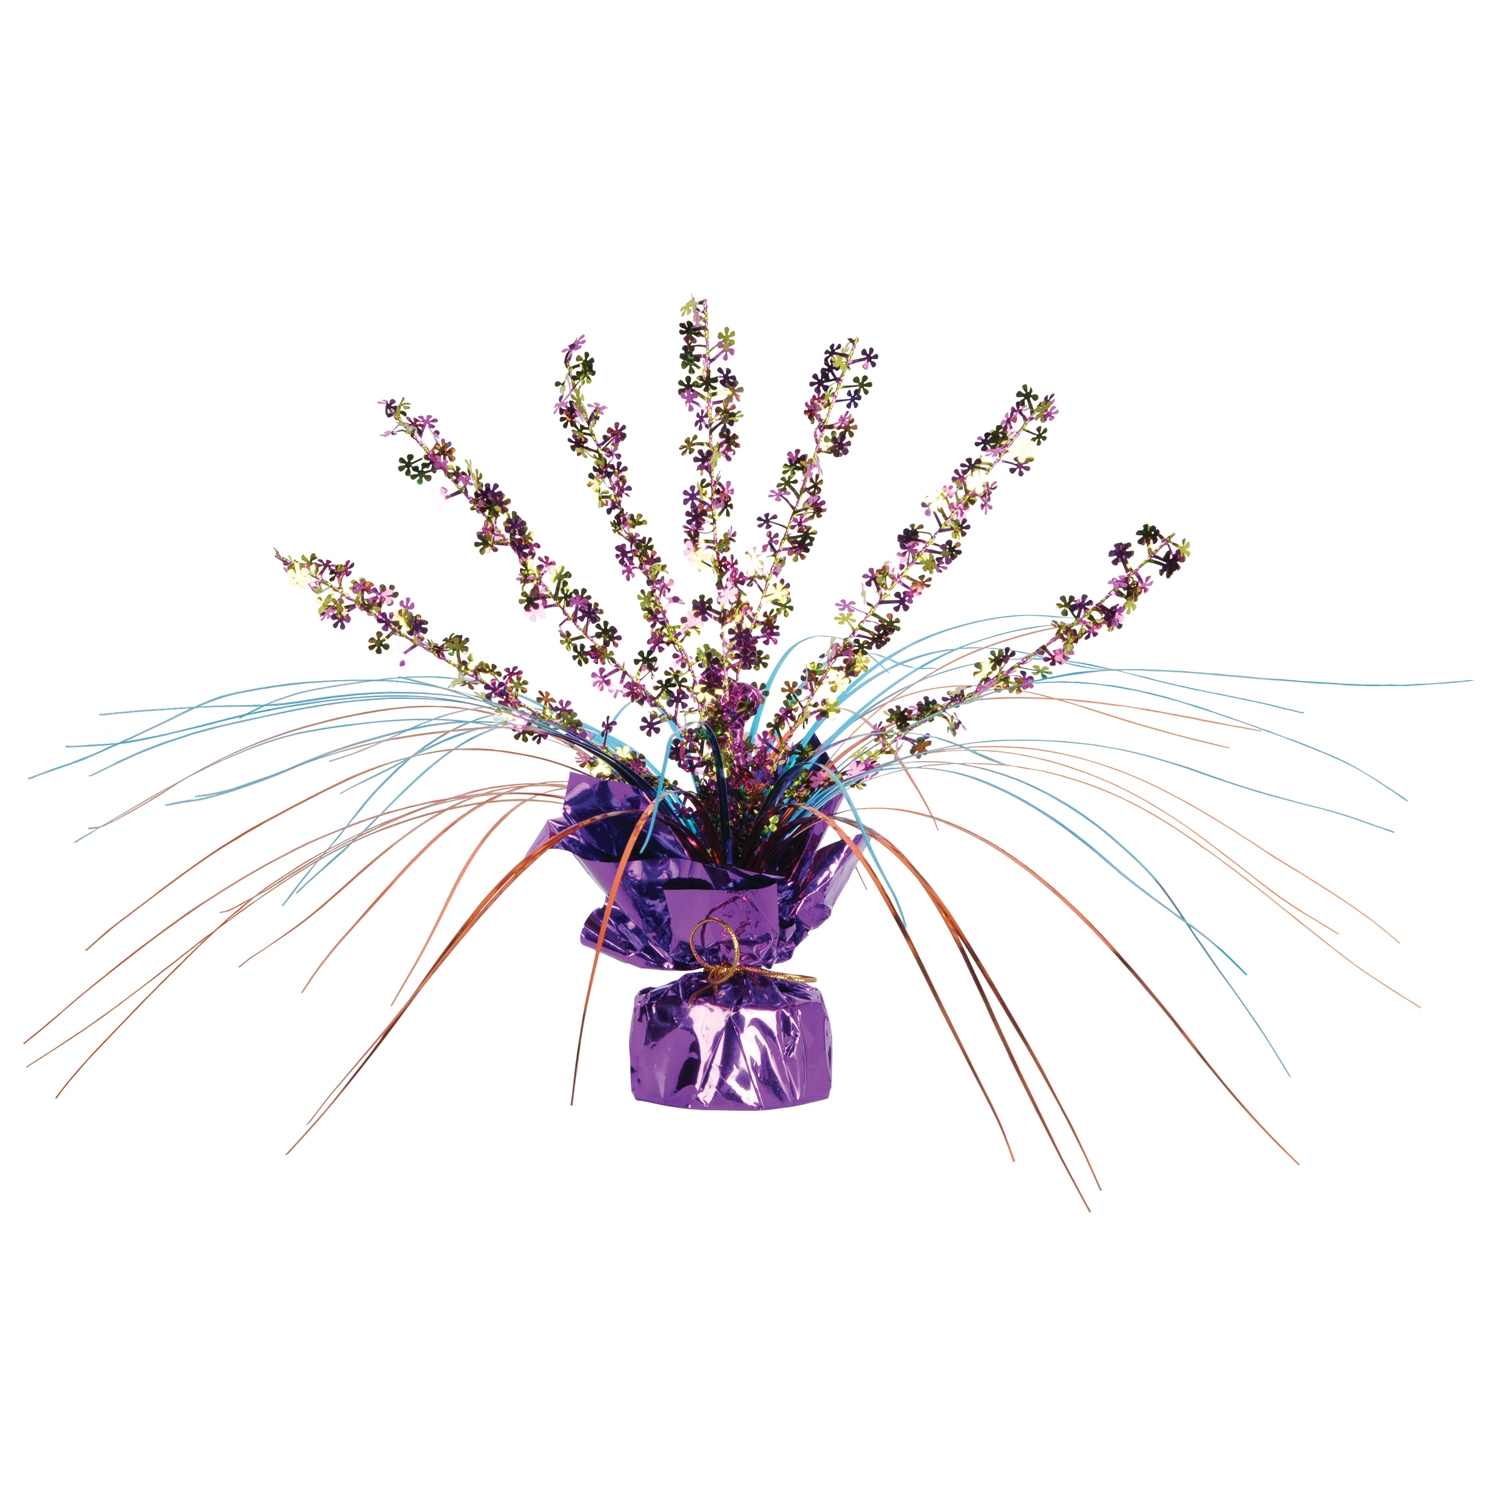 Retro Flowers Gleam N Spray Centerpiece (Pack of 12) Retro Flowers Gleam N Spray Centerpiece, decoration, centerpiece, 60s, 1960s, new years eve, halloween, wholesale, inexpensive, bulk